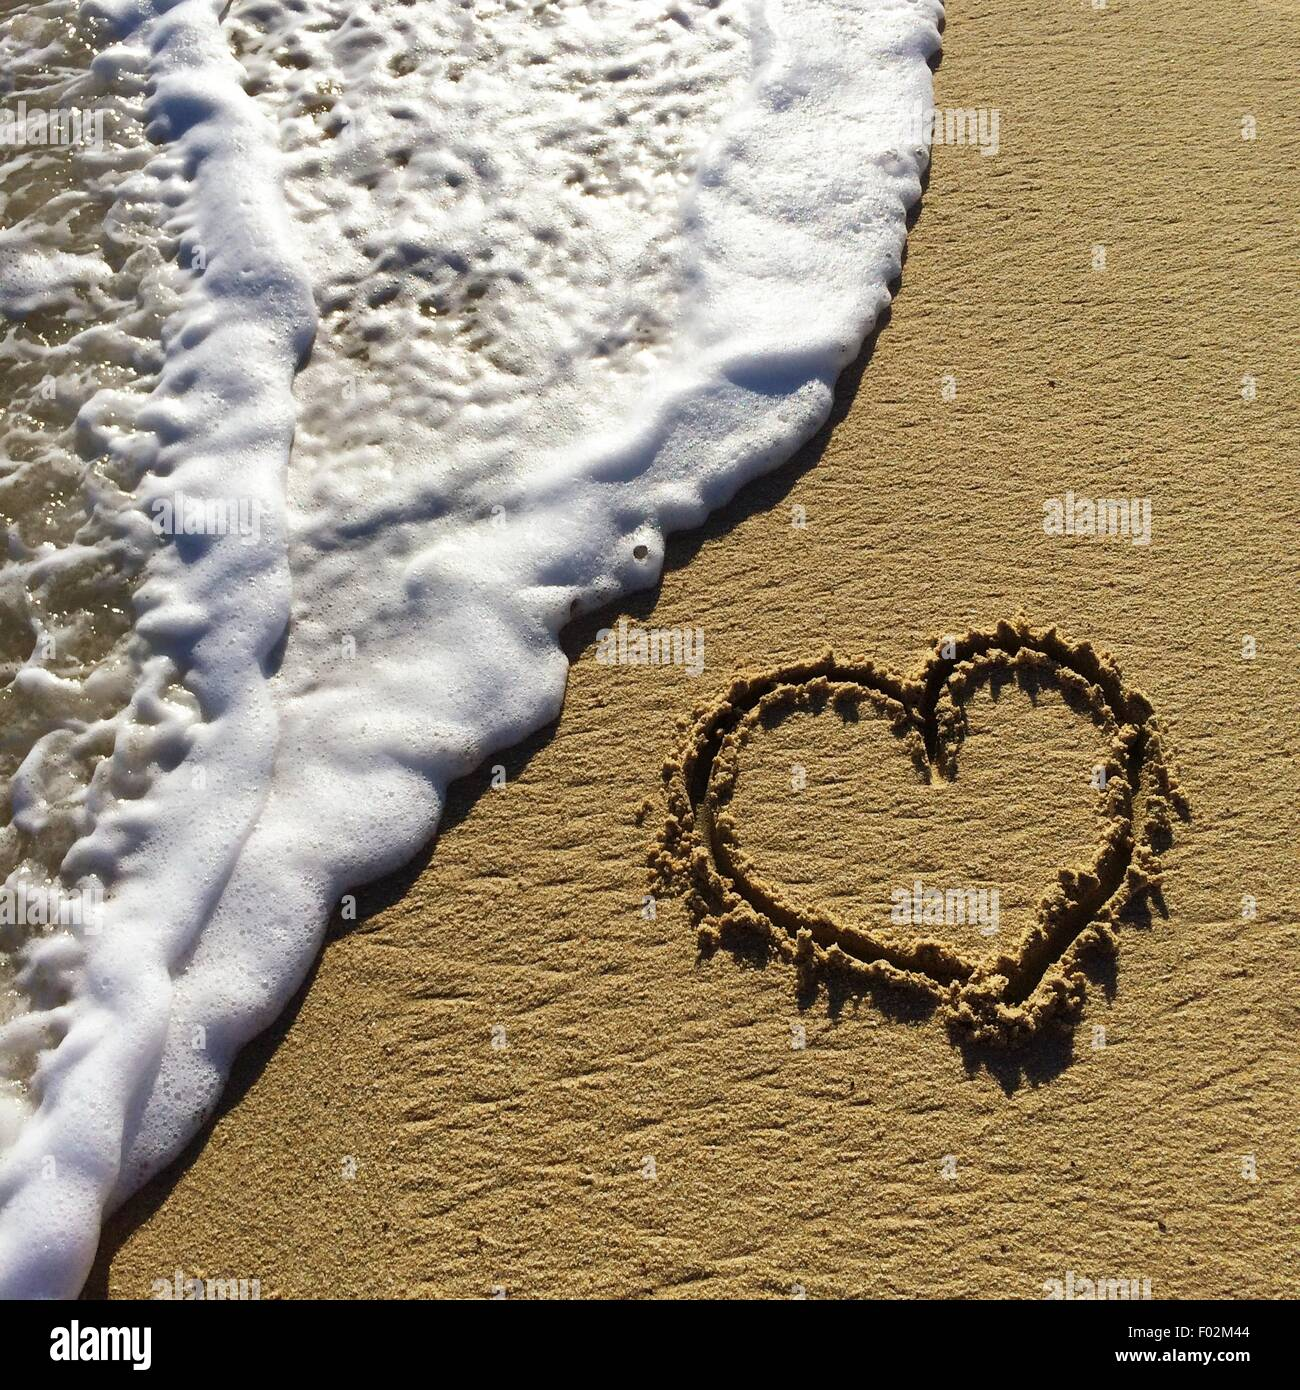 Forme de coeur dessiné dans le sable d'une plage Photo Stock